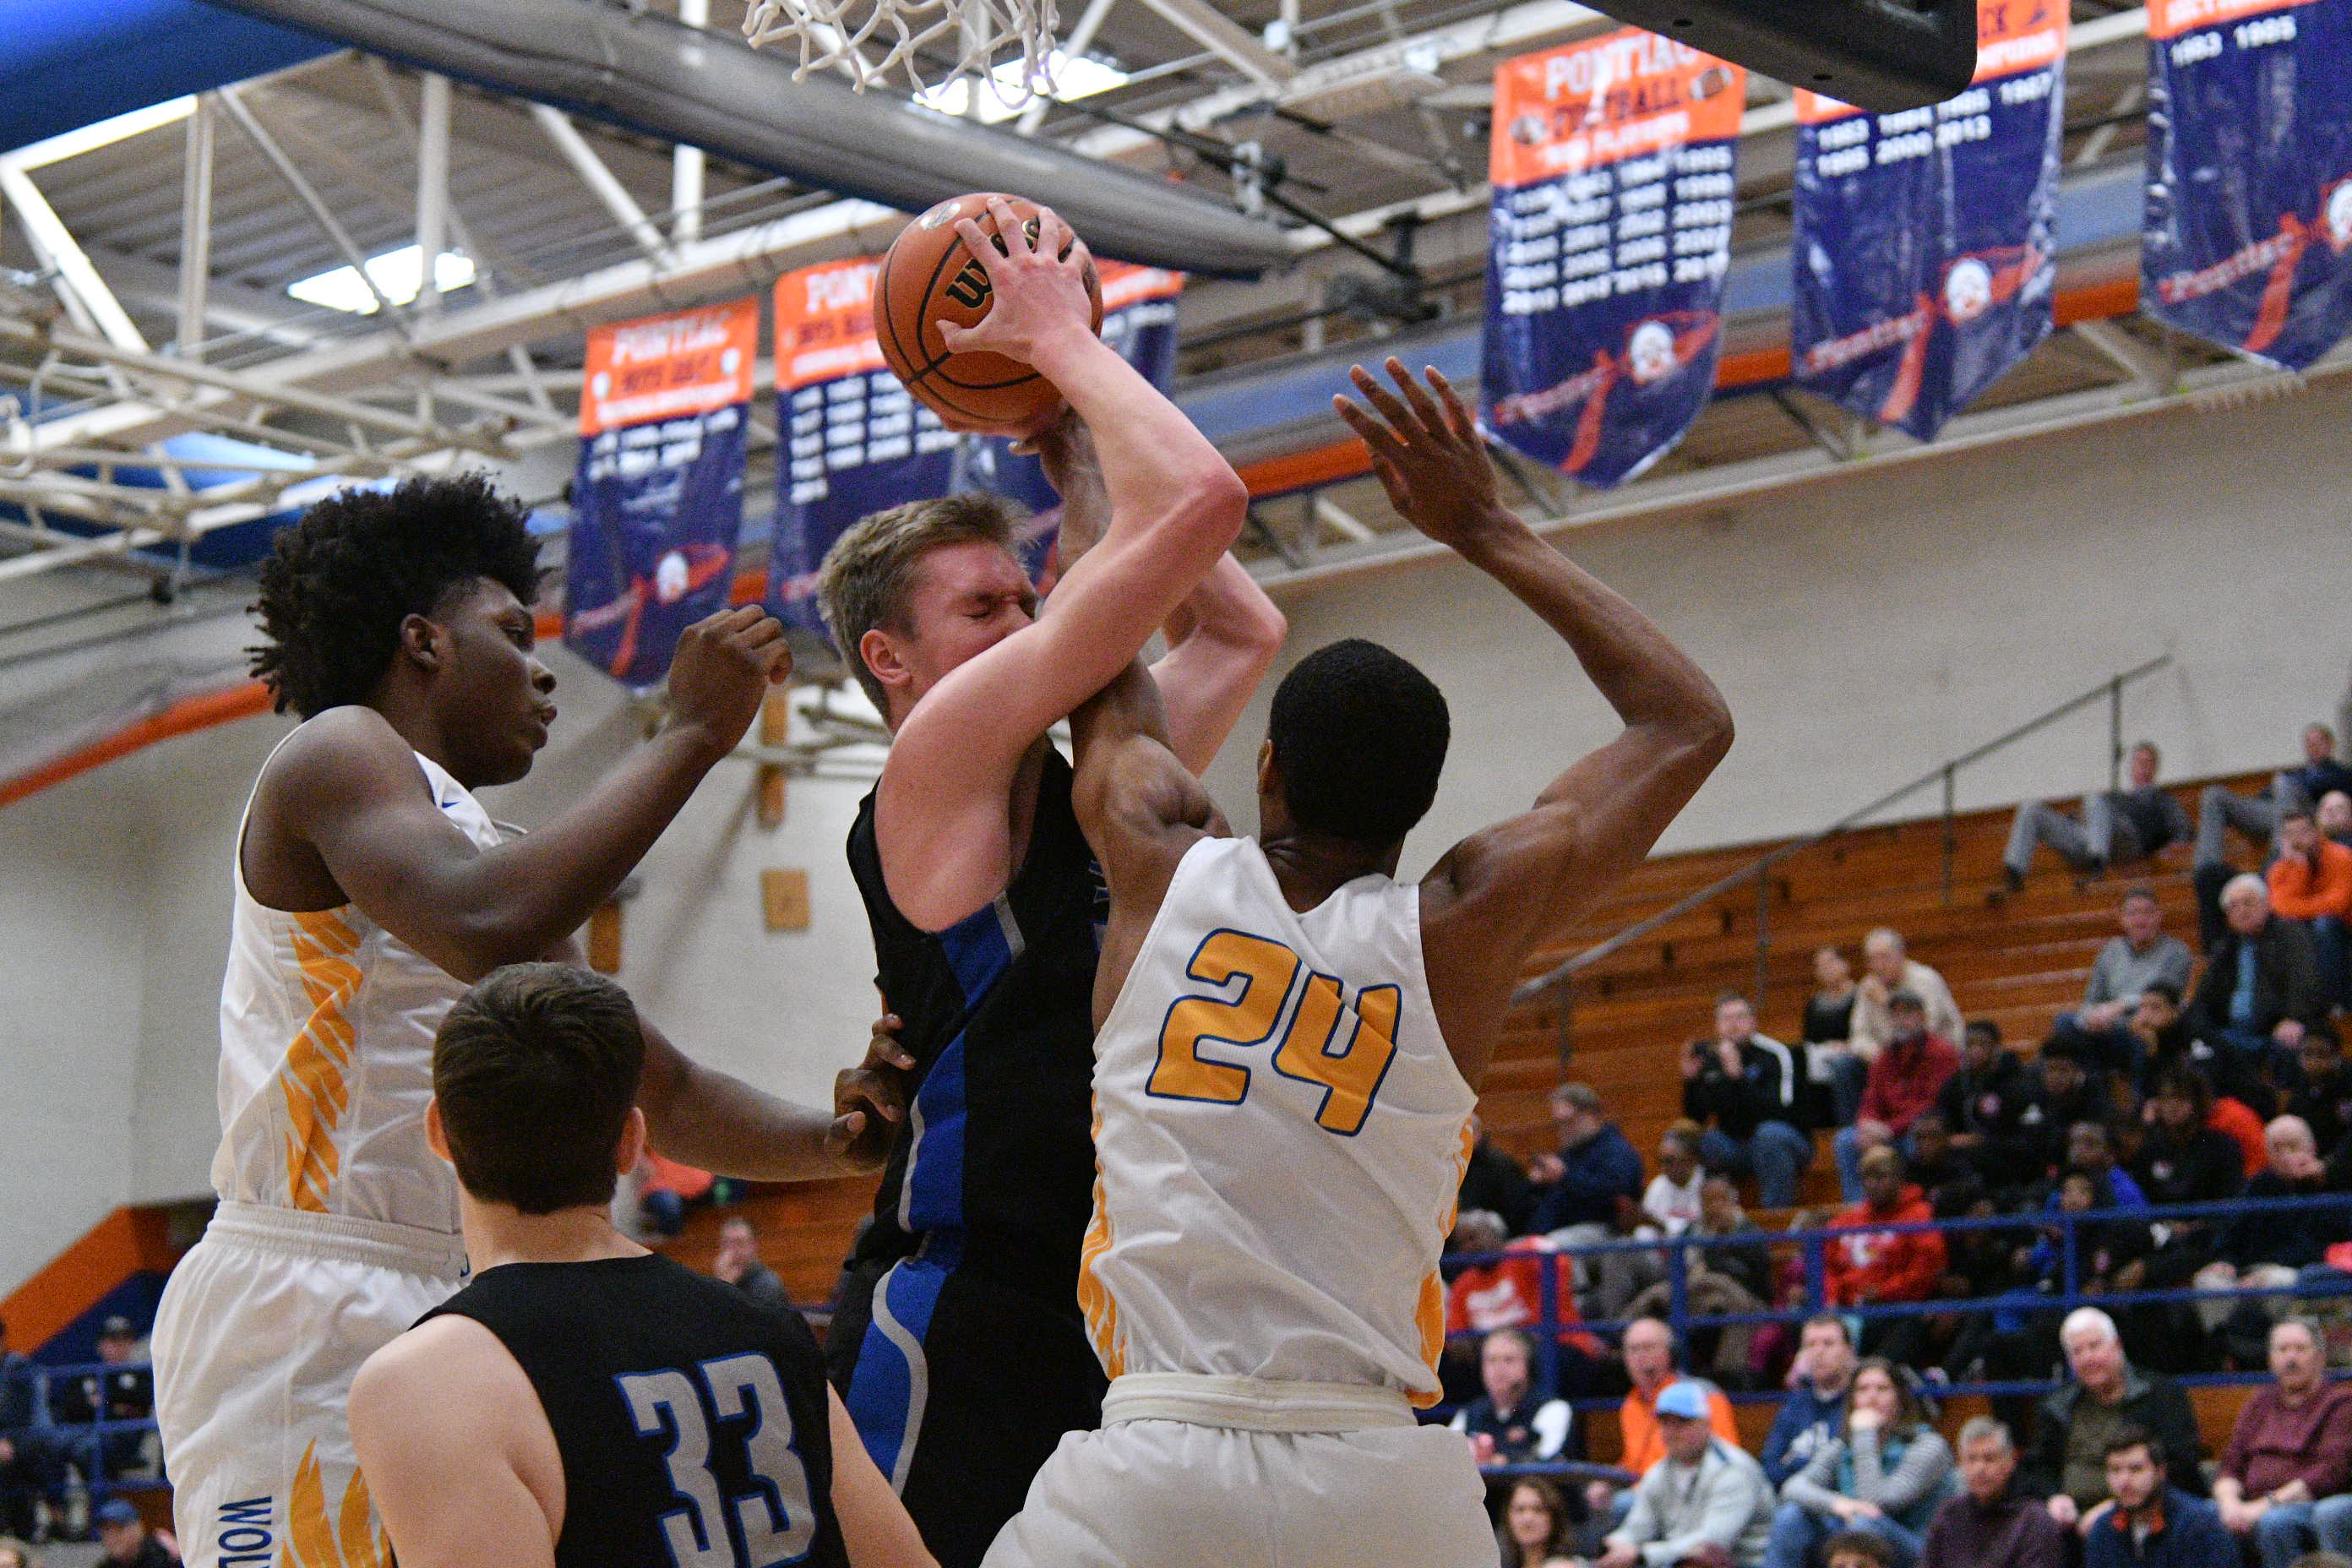 St. Charles North's Connor Linke (34) is hit in the face by Simeon's Jaylen Granger (24) while going for a rebound.